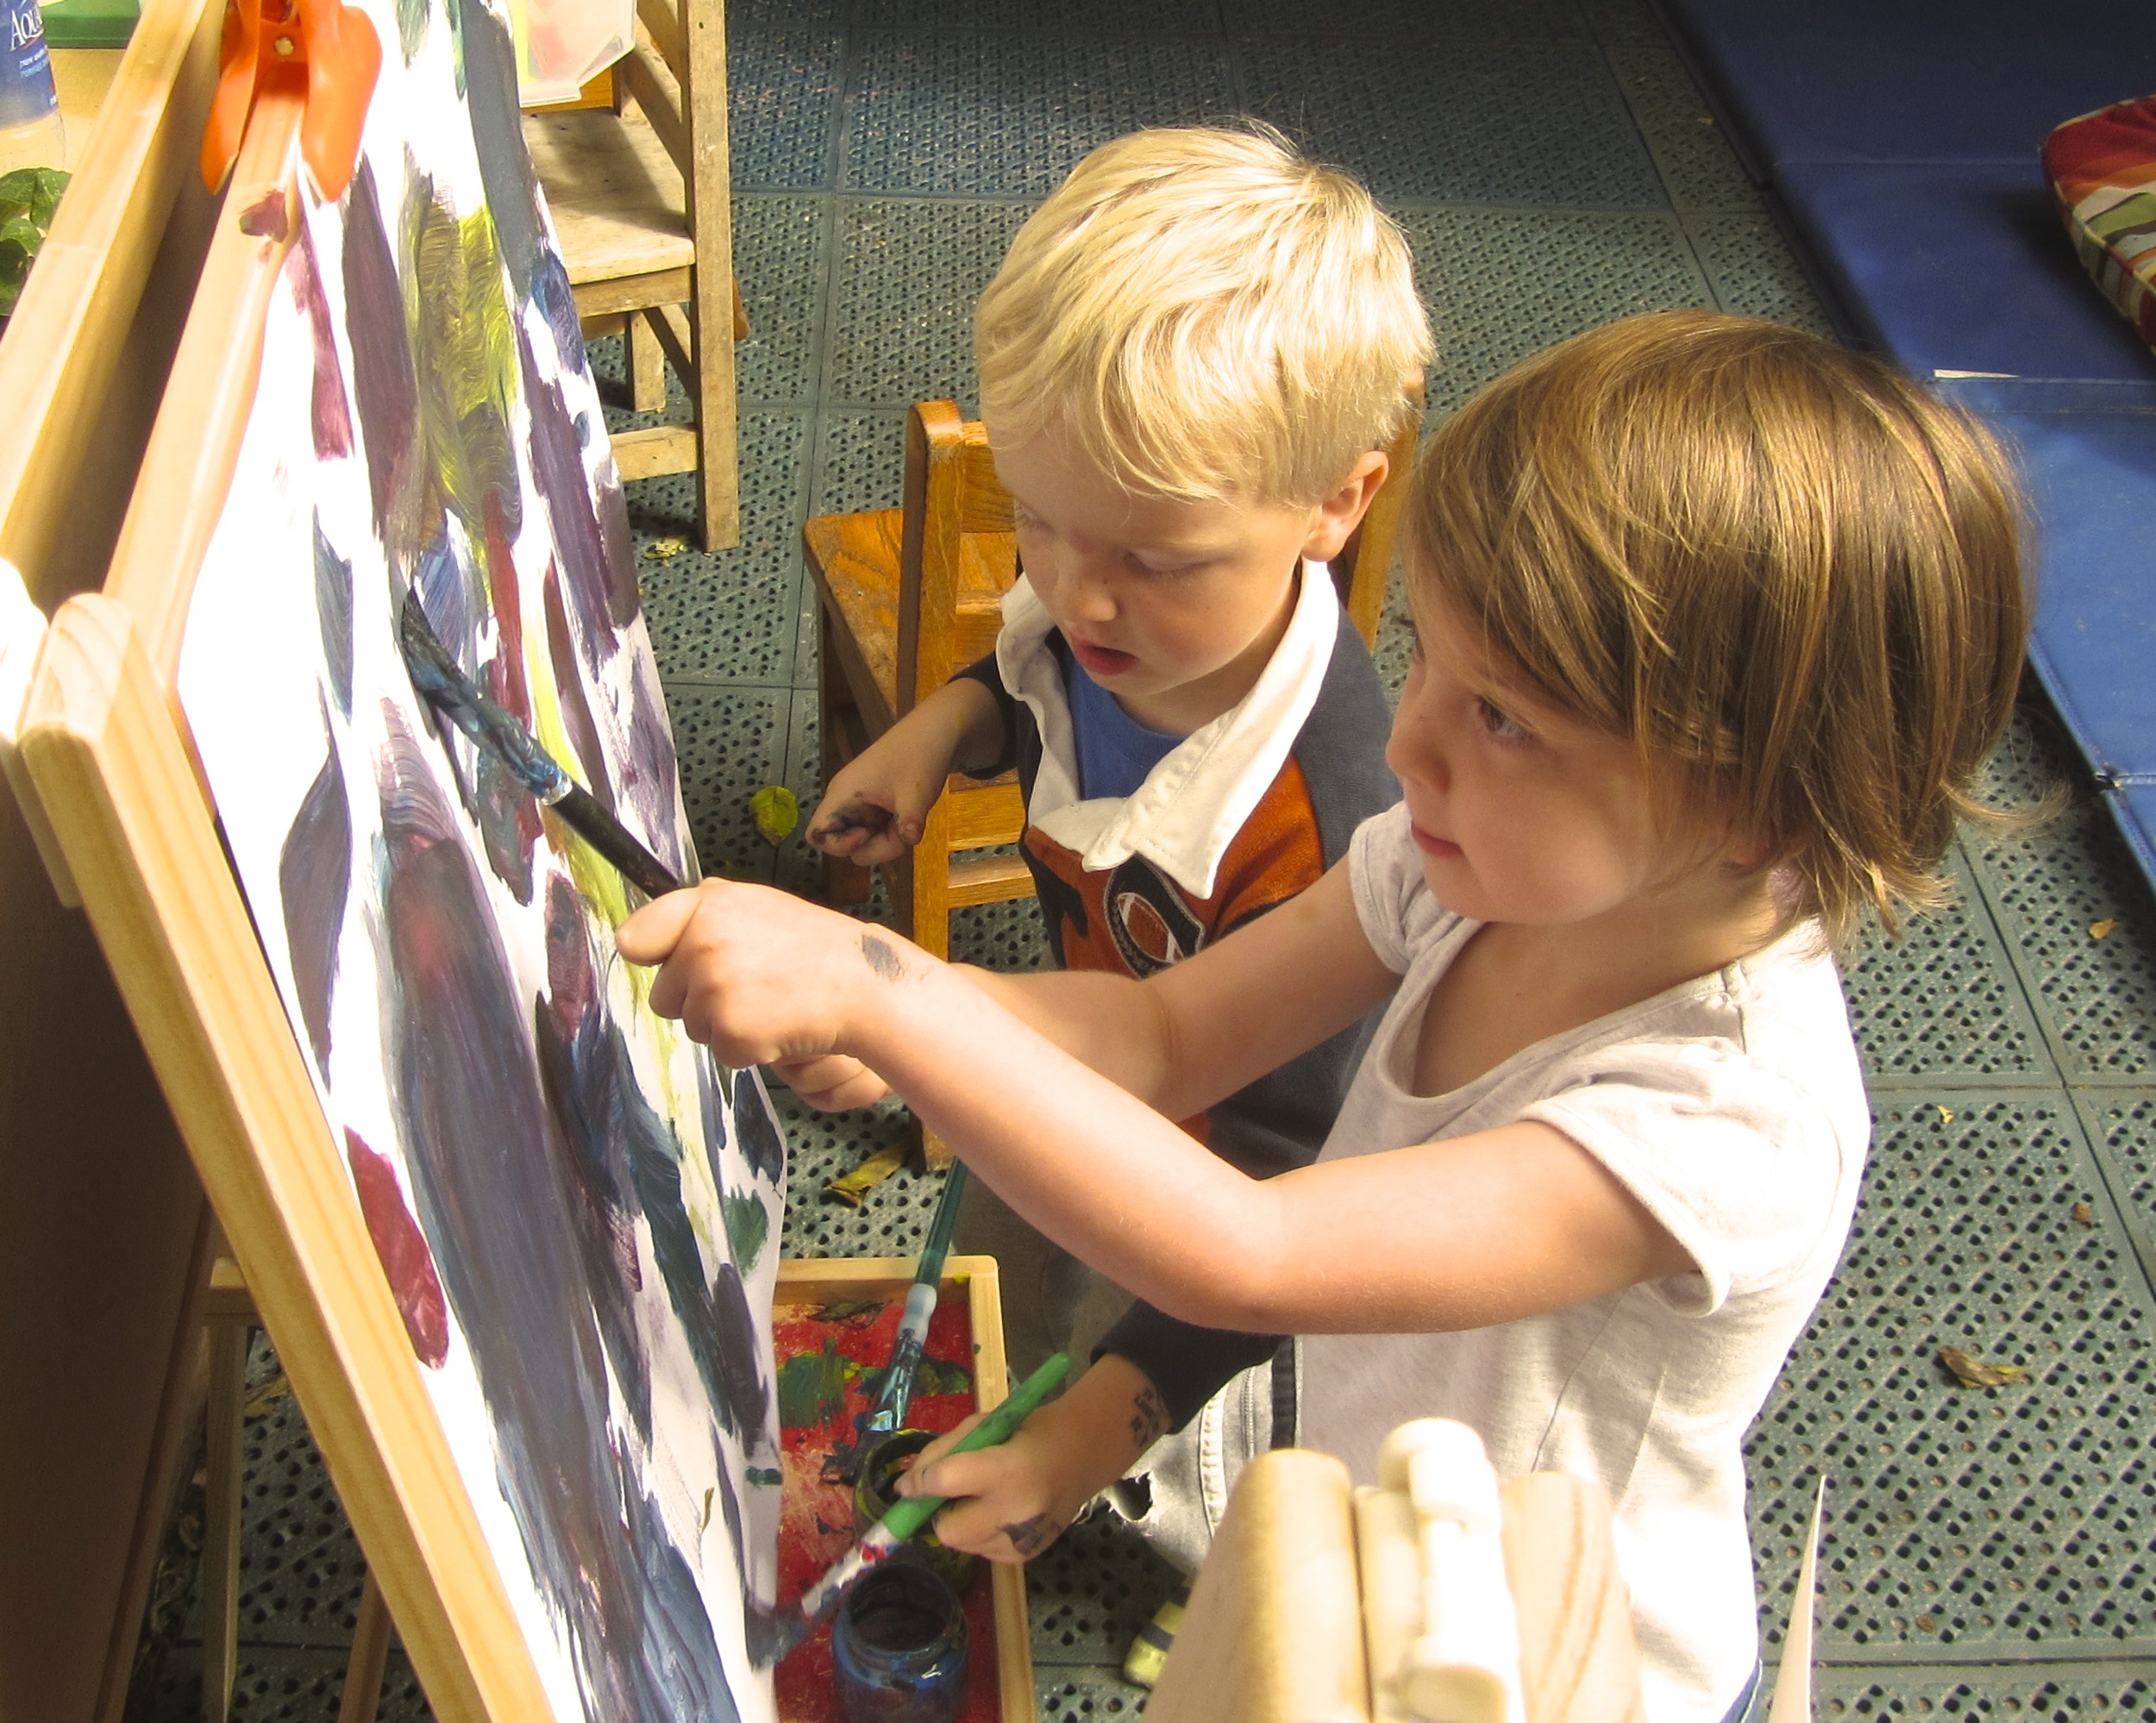 Painting is both a sensory experience for children and a form of creative expression.